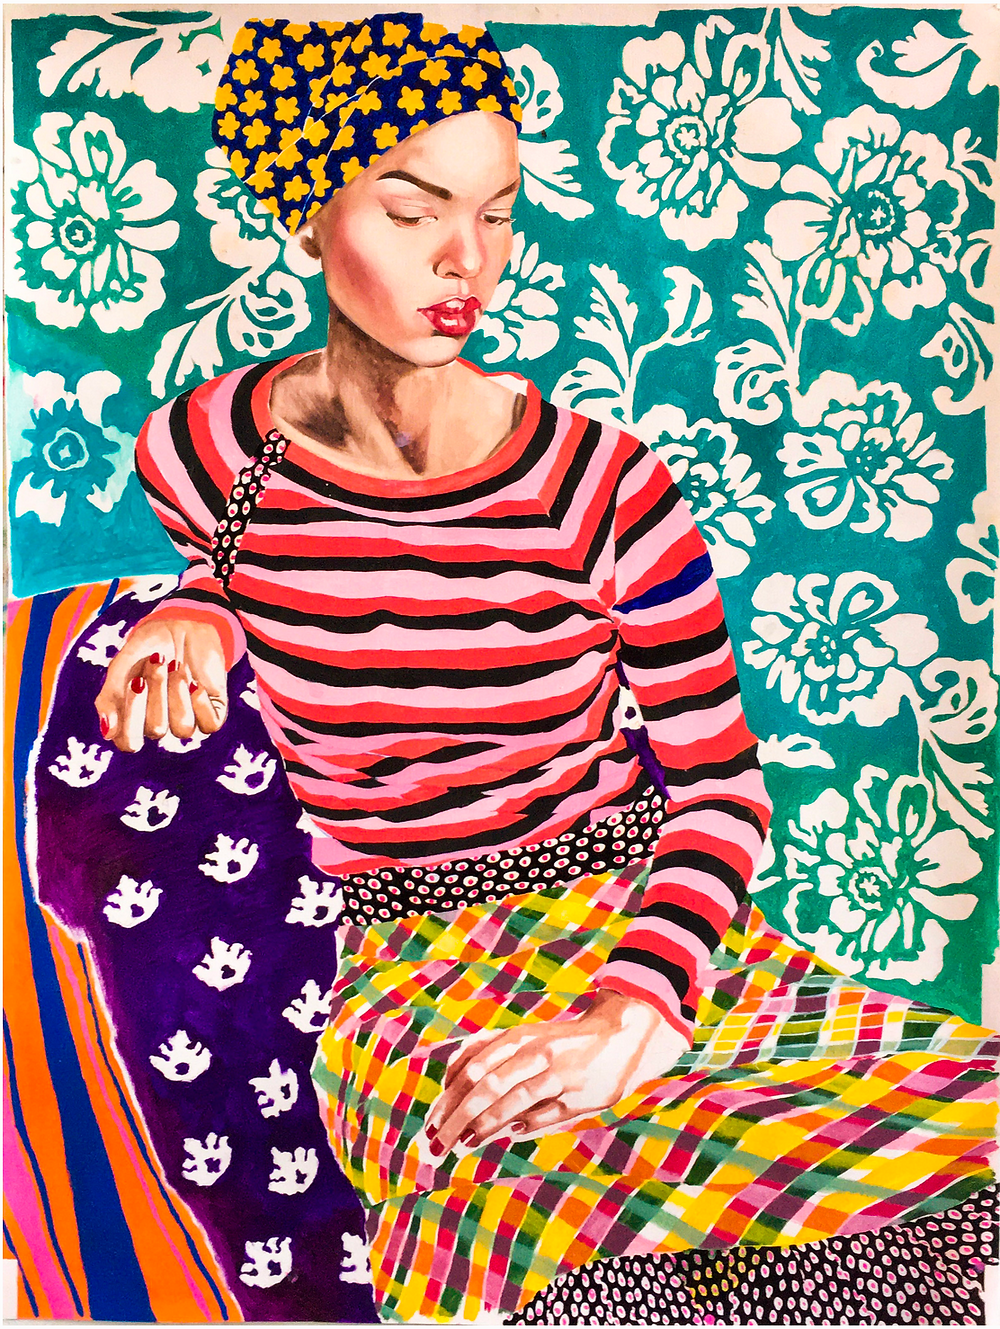 portrait of dark skinned girl in colorful patterned clothes and head wrap